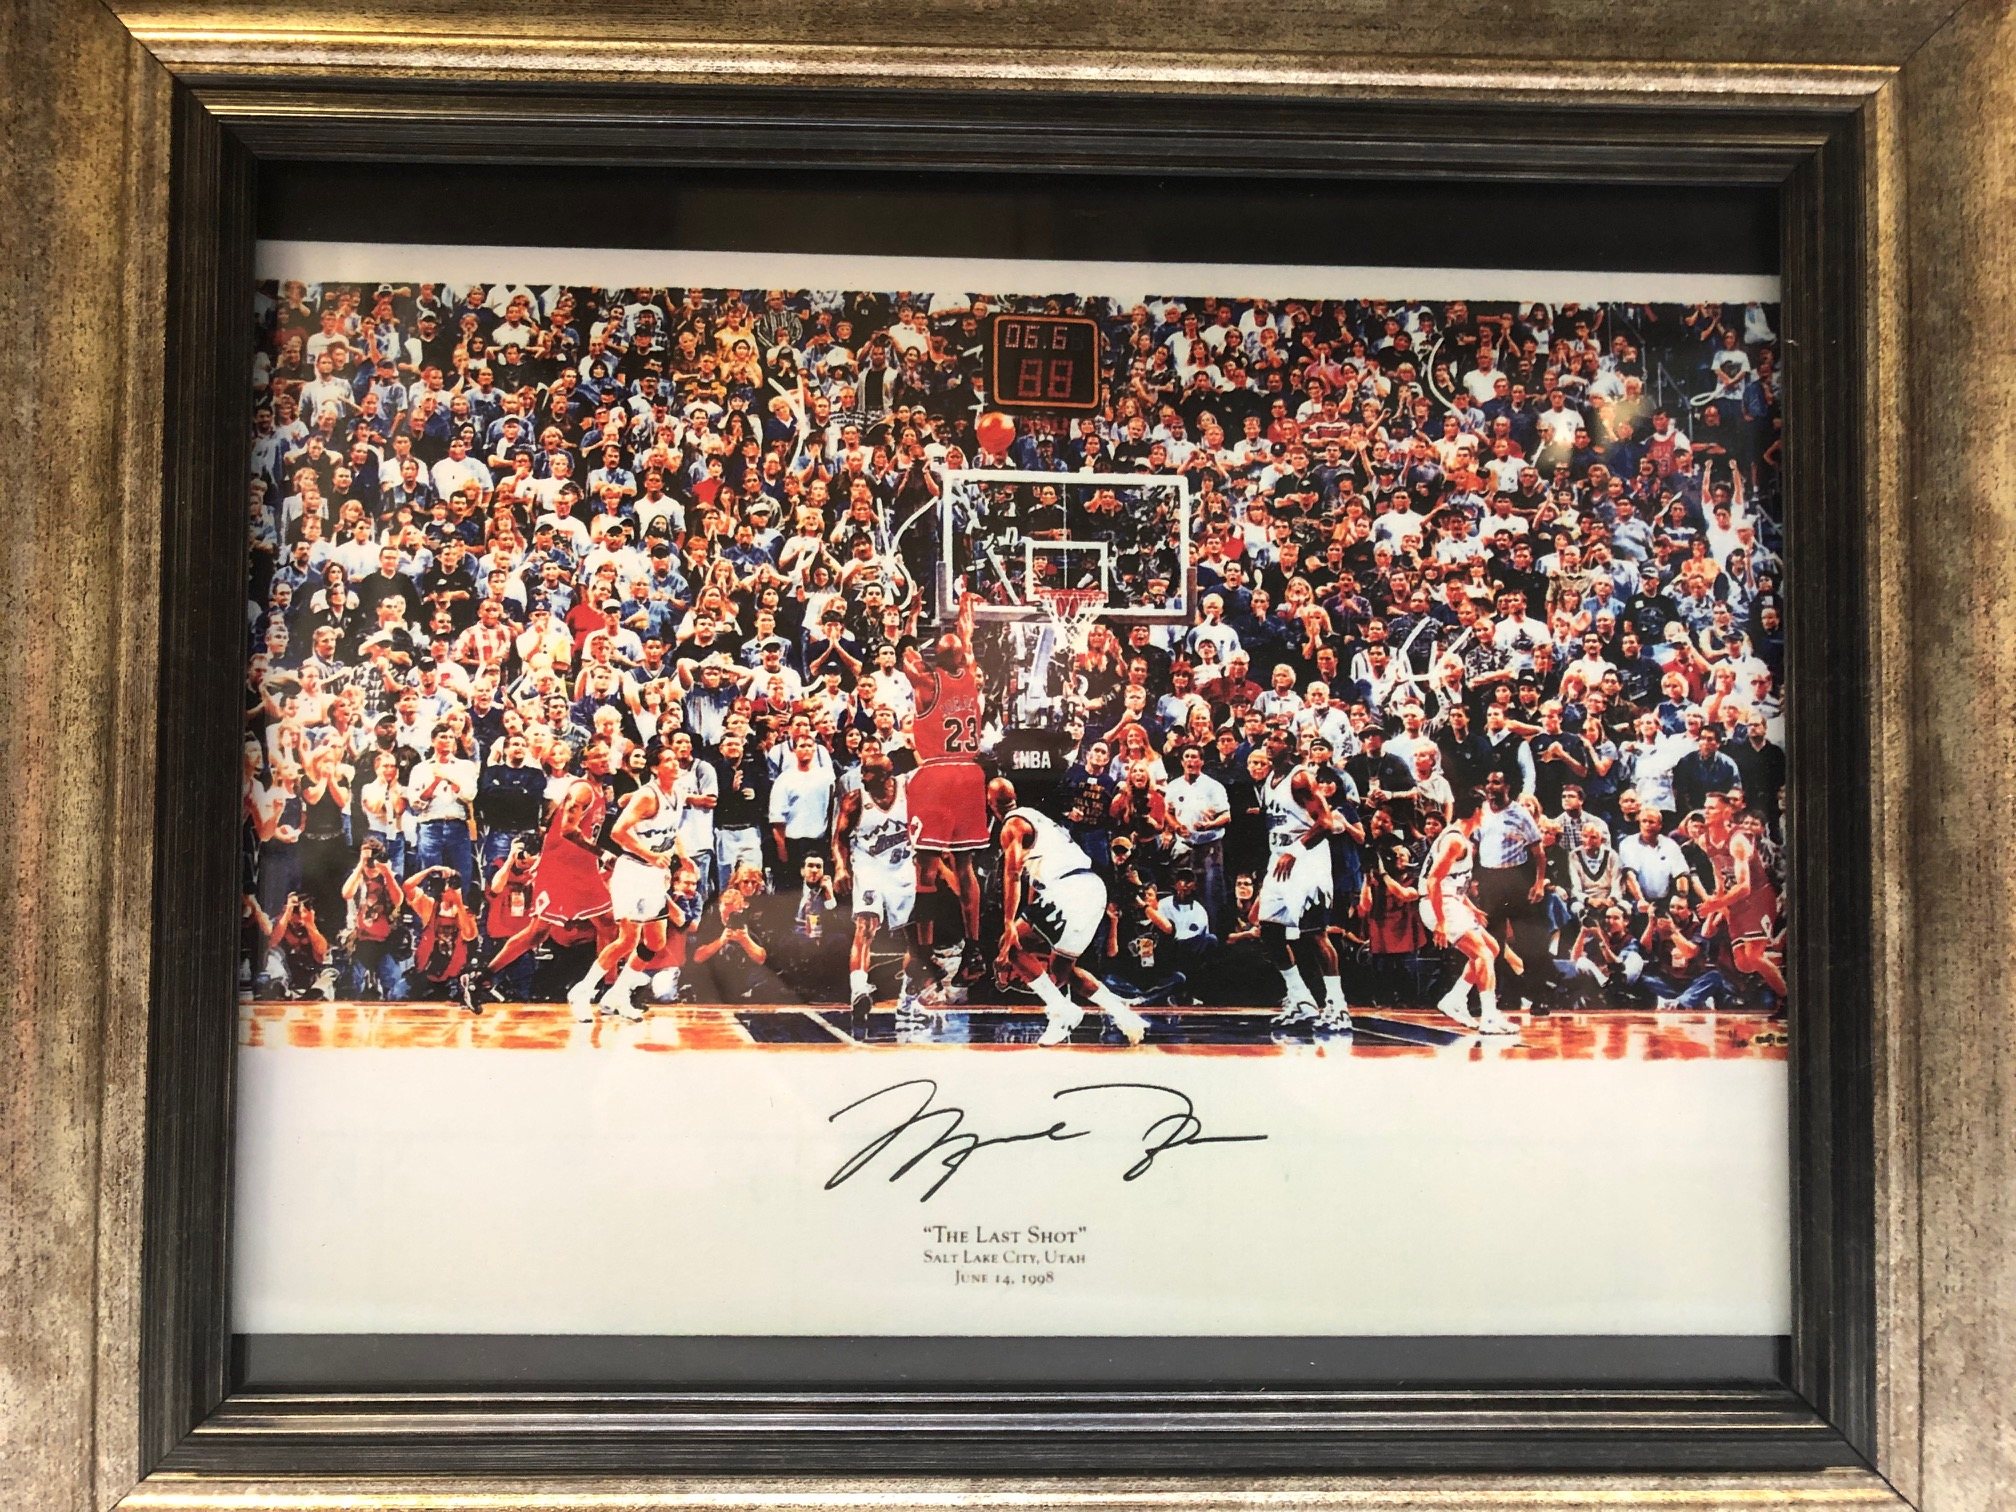 Framed fascimile autograph of Michael Jordan making historic shot vs. Utah!